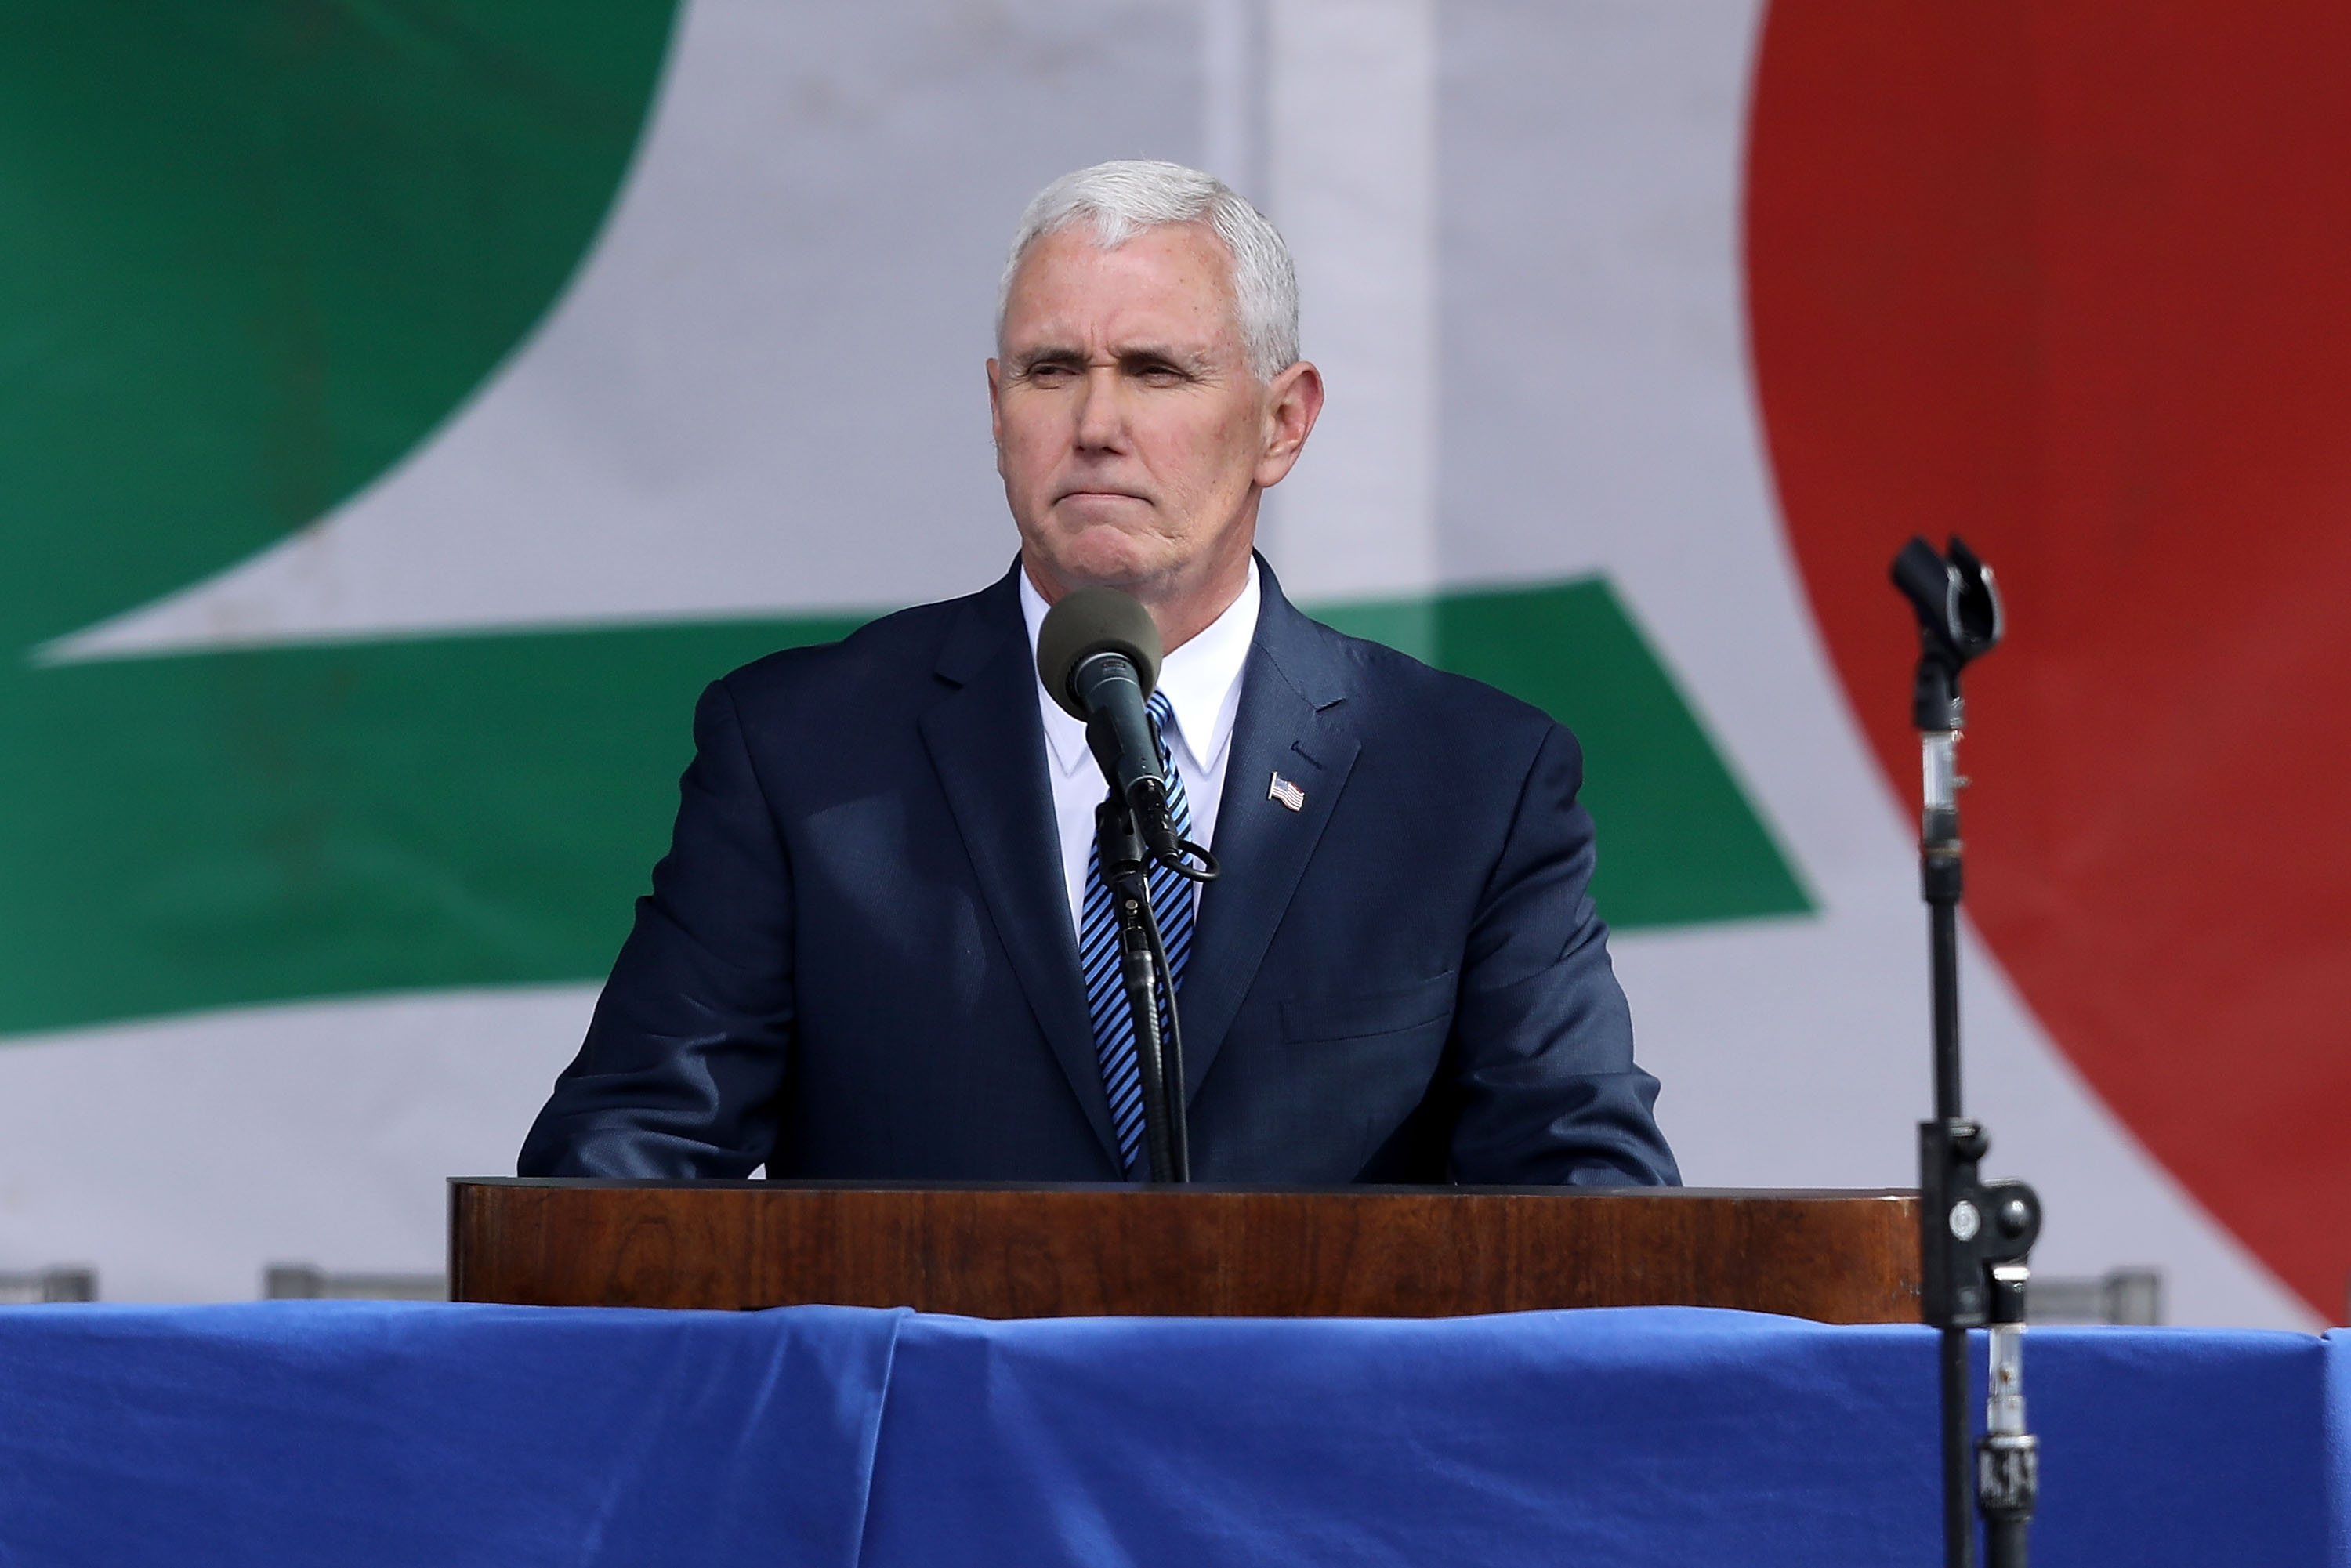 U.S. Vice President Mike Pence addresses a rally on the National Mall before the start of the 44th annual March for Life January 27, 2017 in Washington, DC. (Photo by Chip Somodevilla/Getty Images)